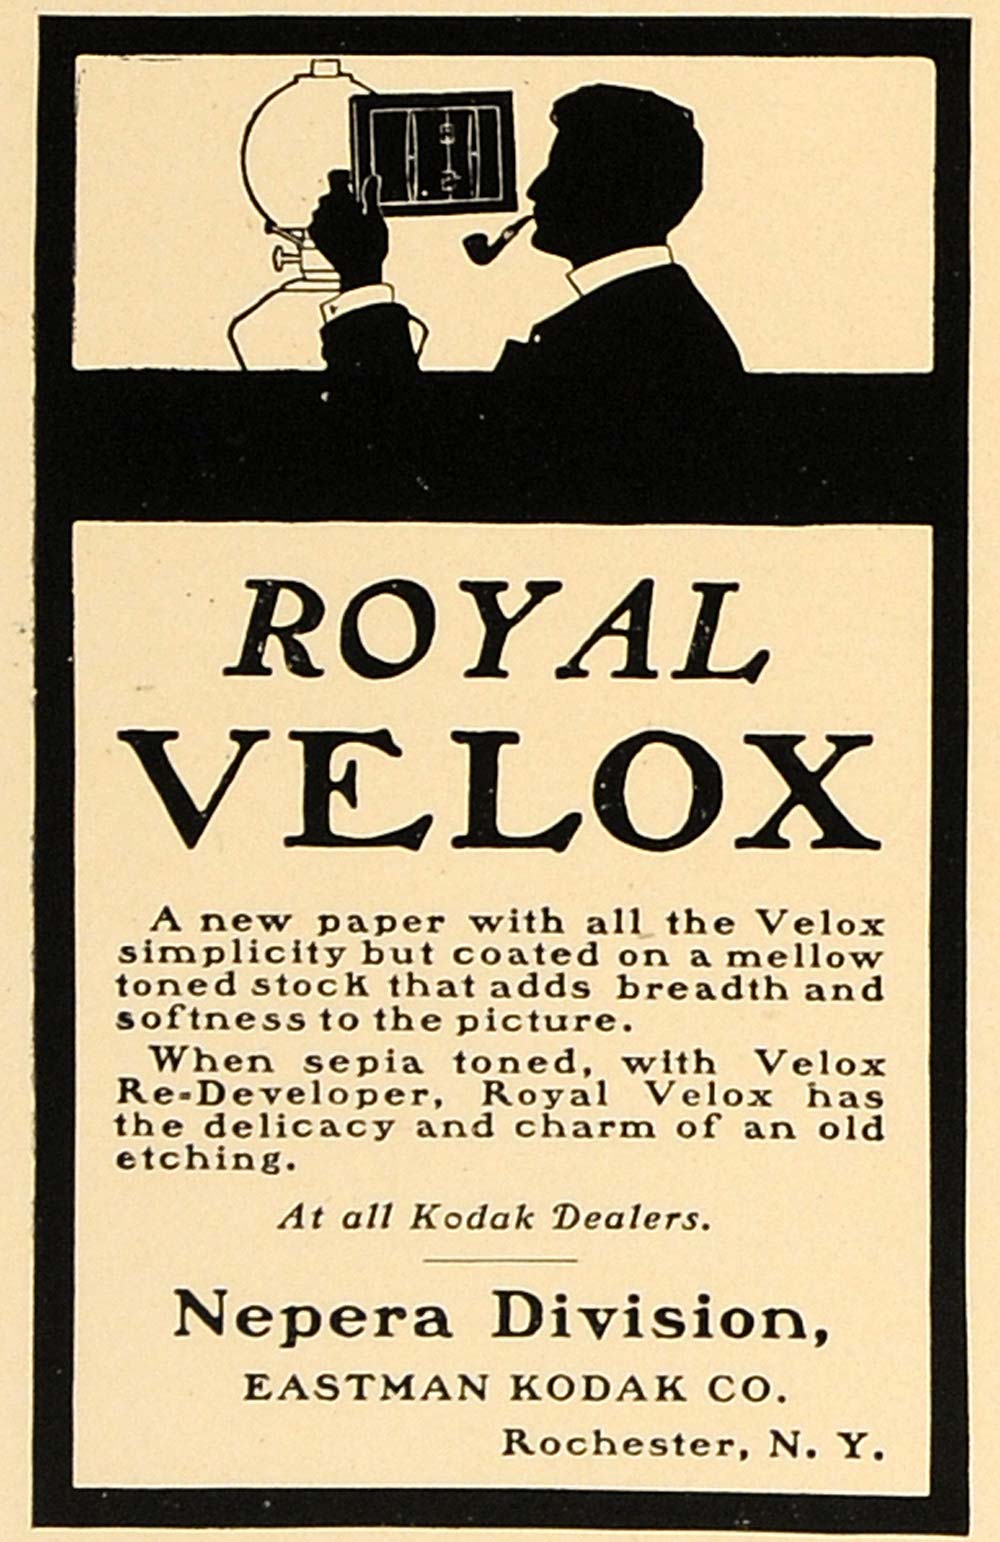 1924 Ad Royal Velox Kodak Re-Developer Nepera Paper - ORIGINAL ADVERTISING CL4